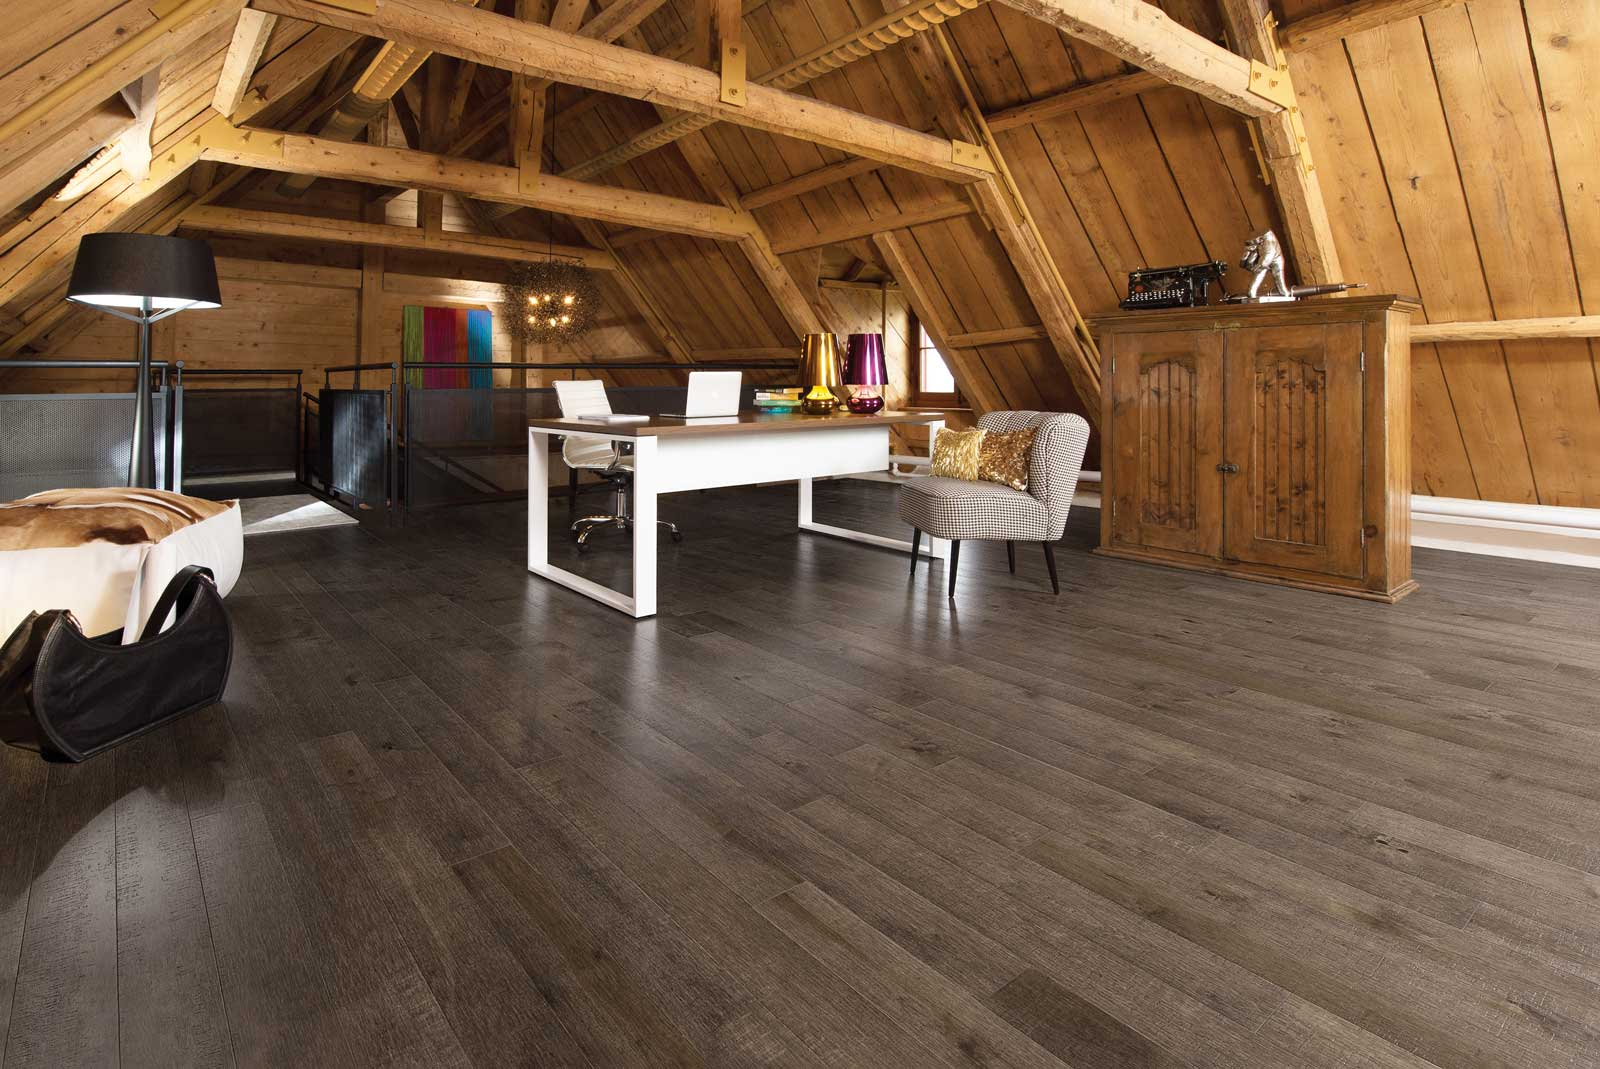 Ready to get started? - Contact us or fill out our new flooring questionnaire